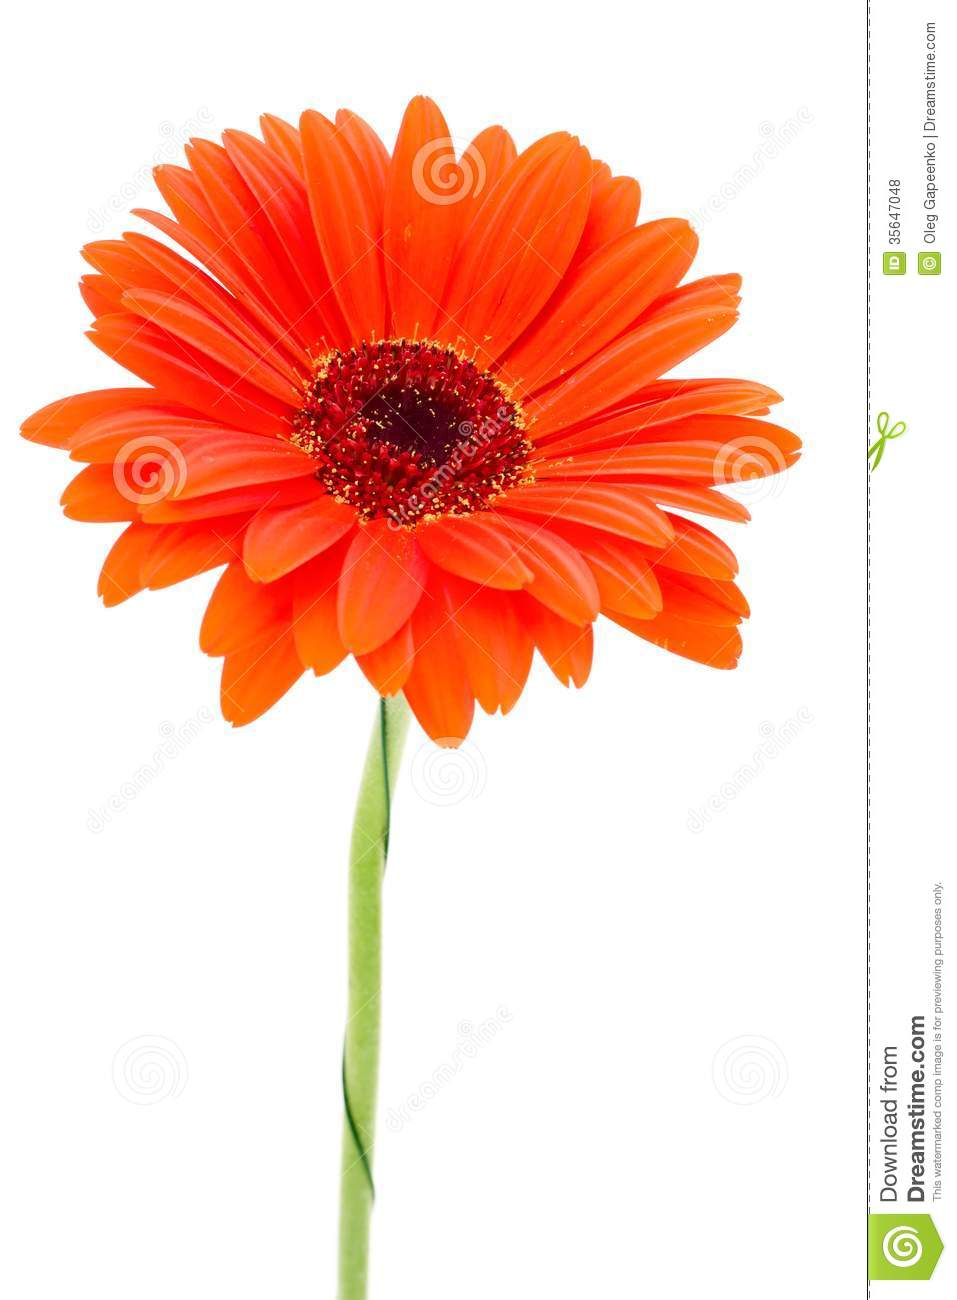 Fleur de gerbera d 39 isolement sur le fond blanc photo stock for Bouquet de fleurs gerbera